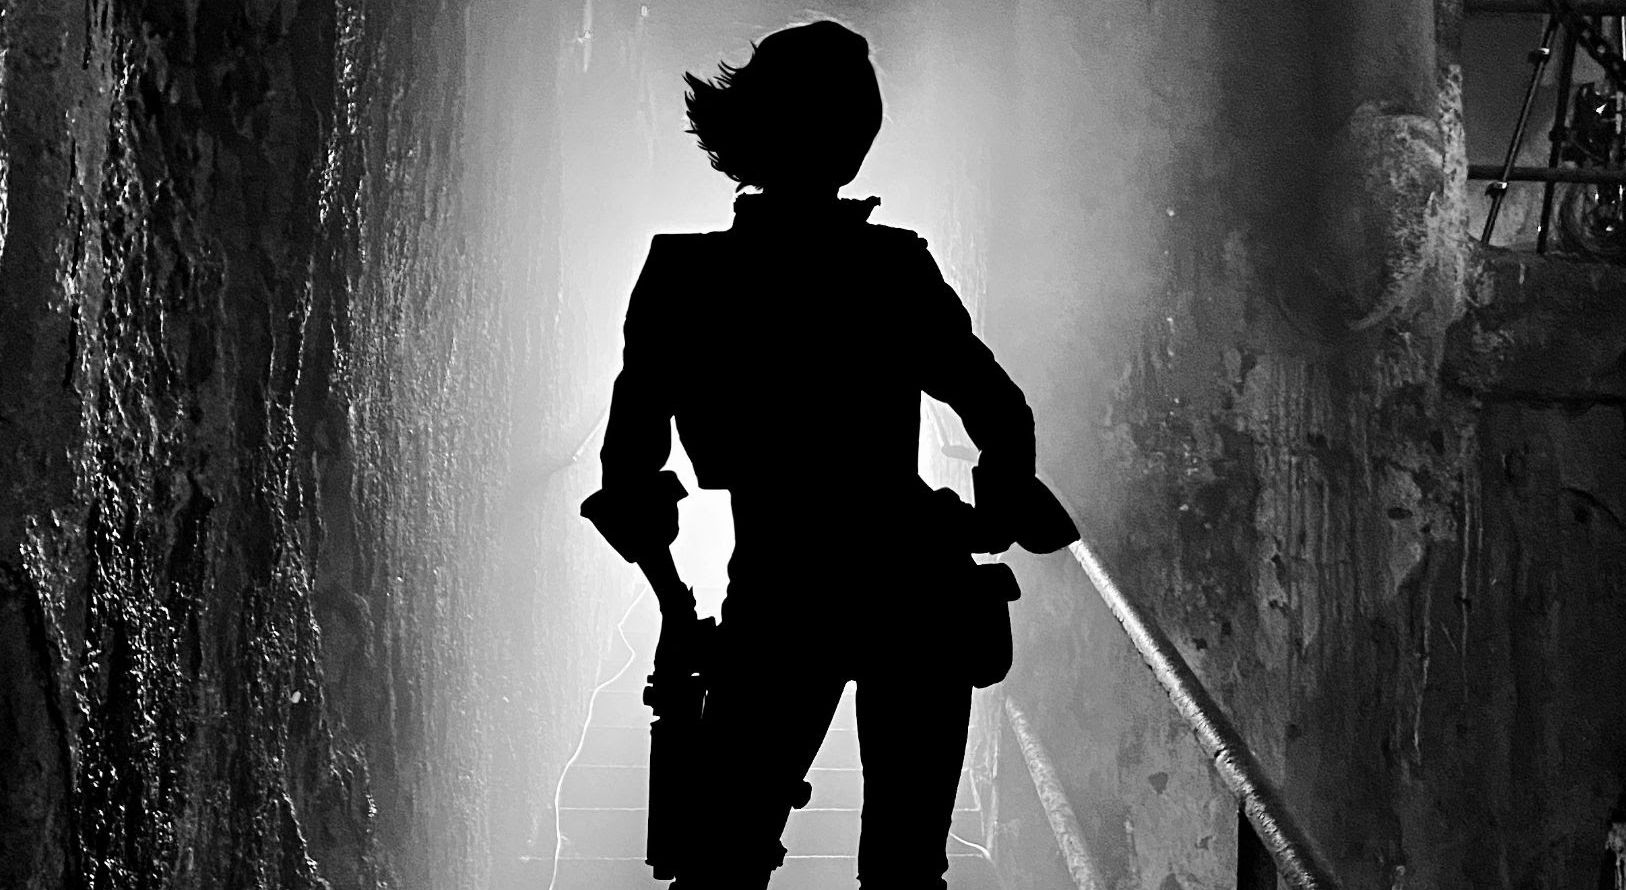 Cate Blanchett as Lilith in silhouette